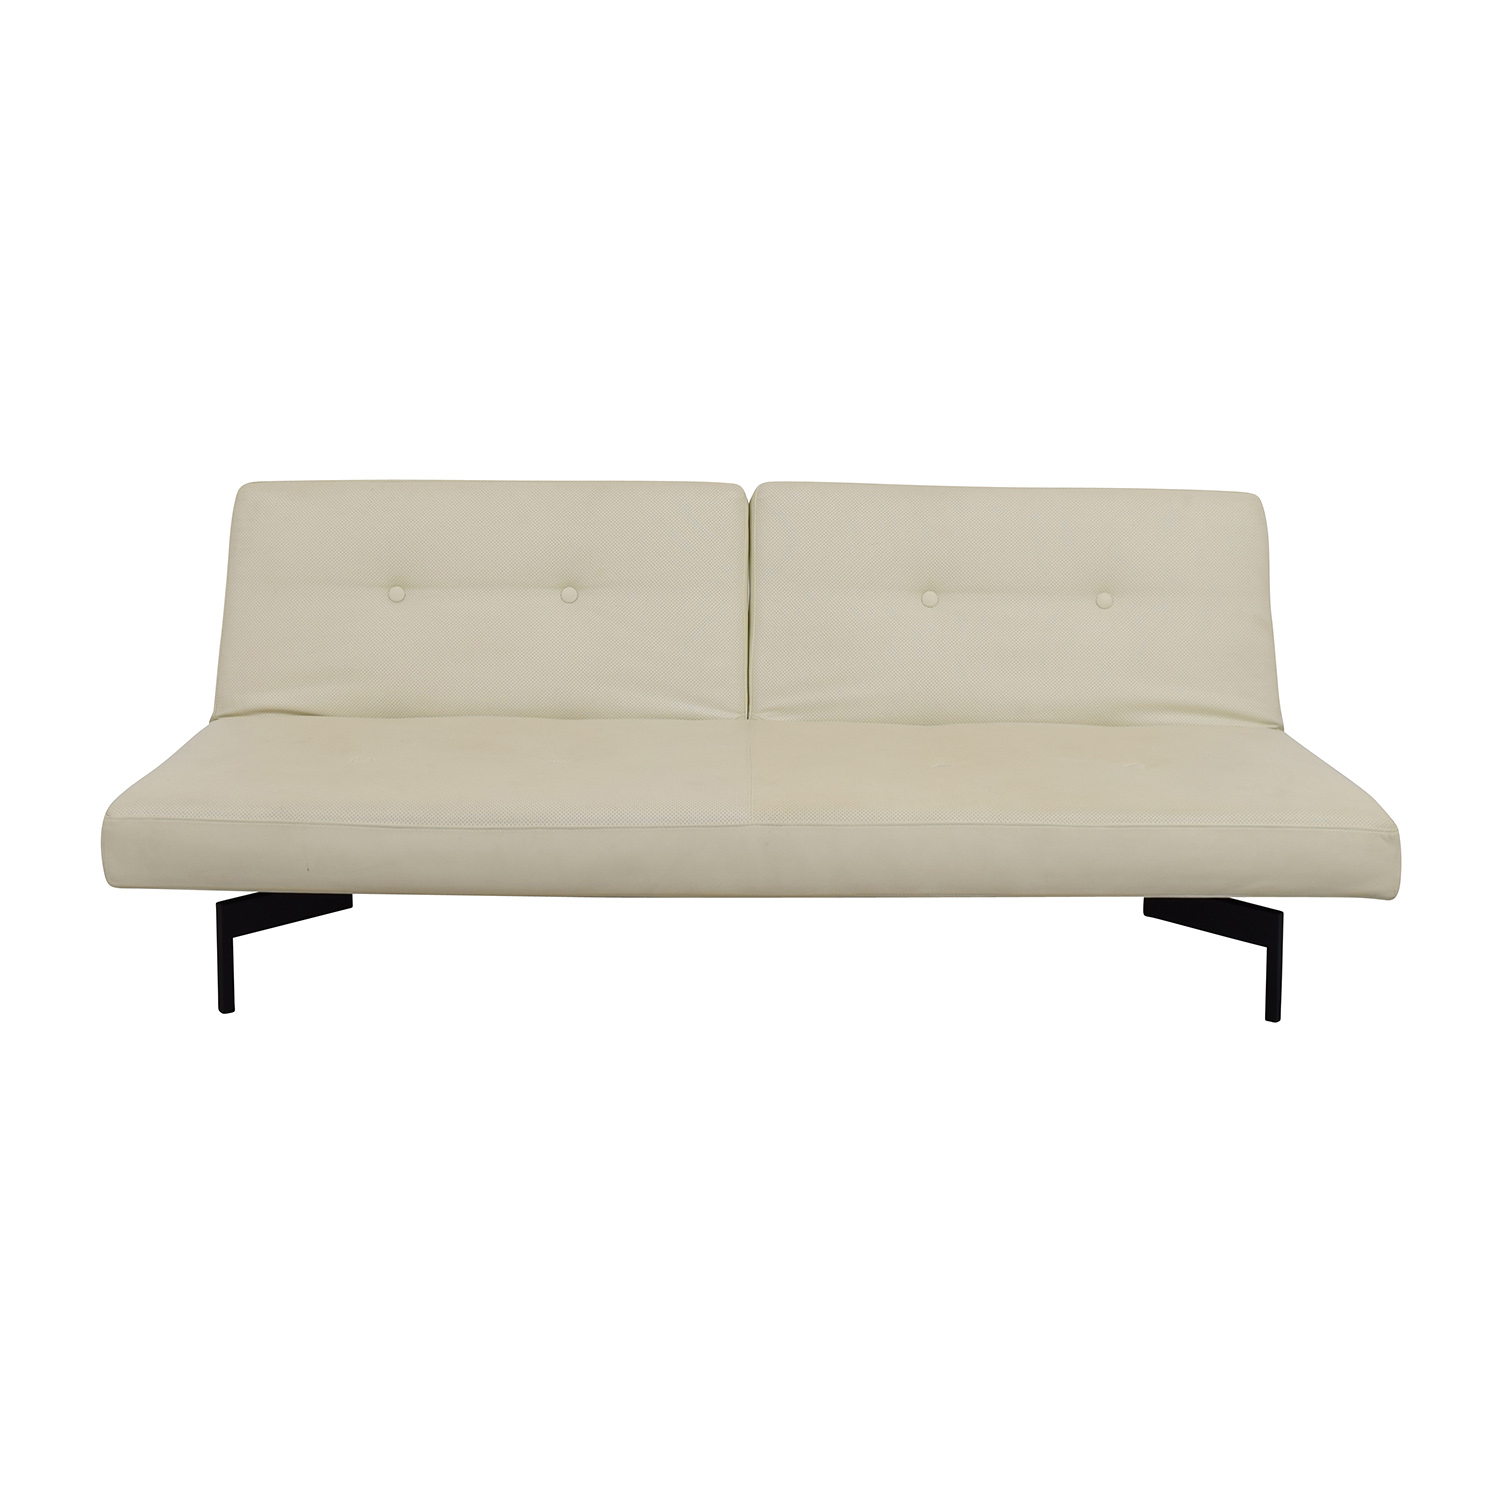 ABC Carpet and Home ABC Carpet & Home Ivory Tufted Sofa Bed nyc